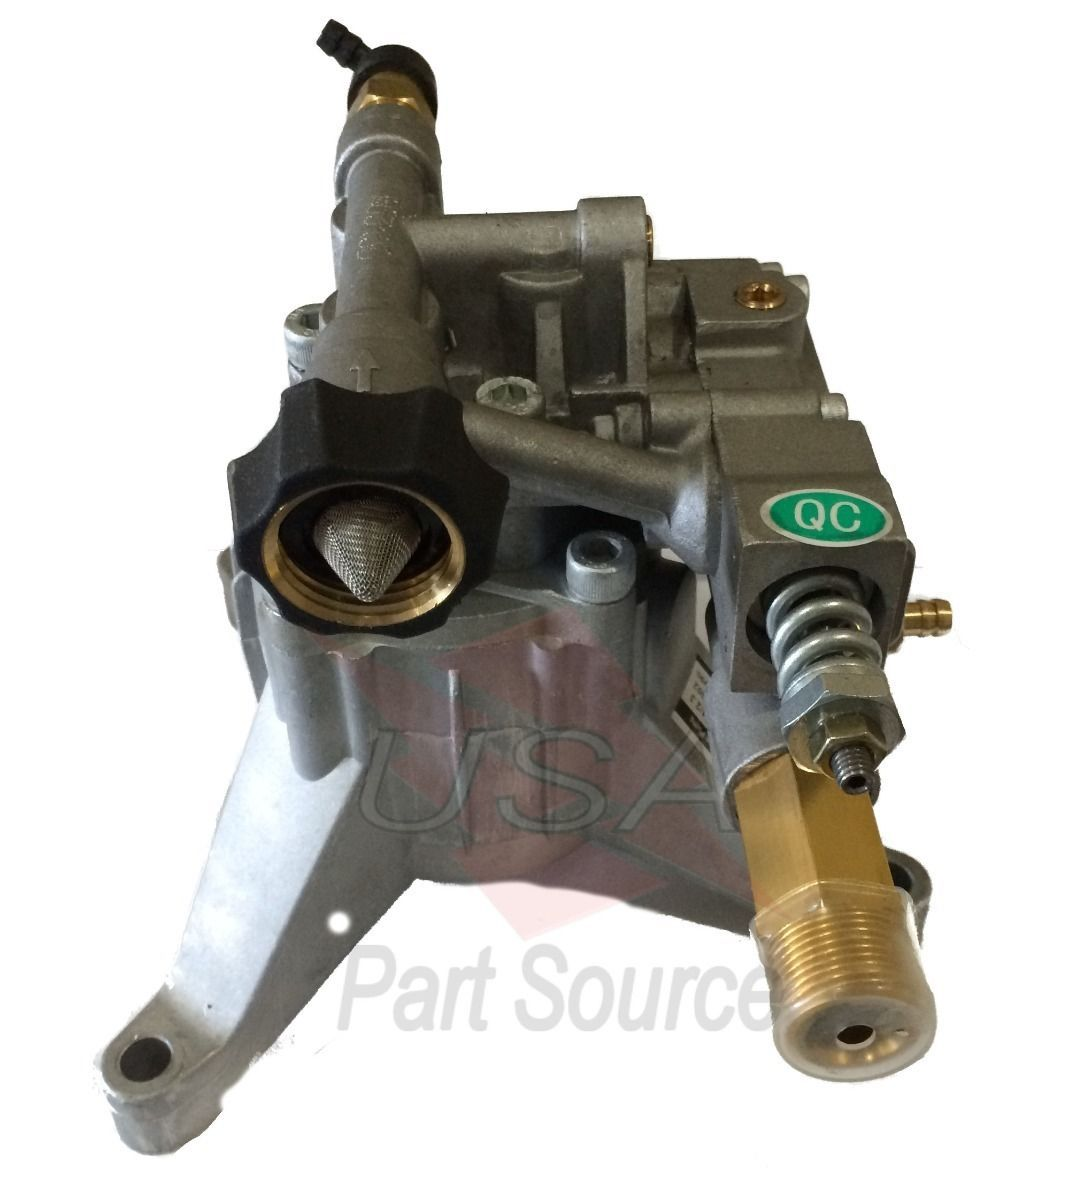 New 2800 PSI PRESSURE WASHER WATER PUMP Porter Cable WGV2021-2